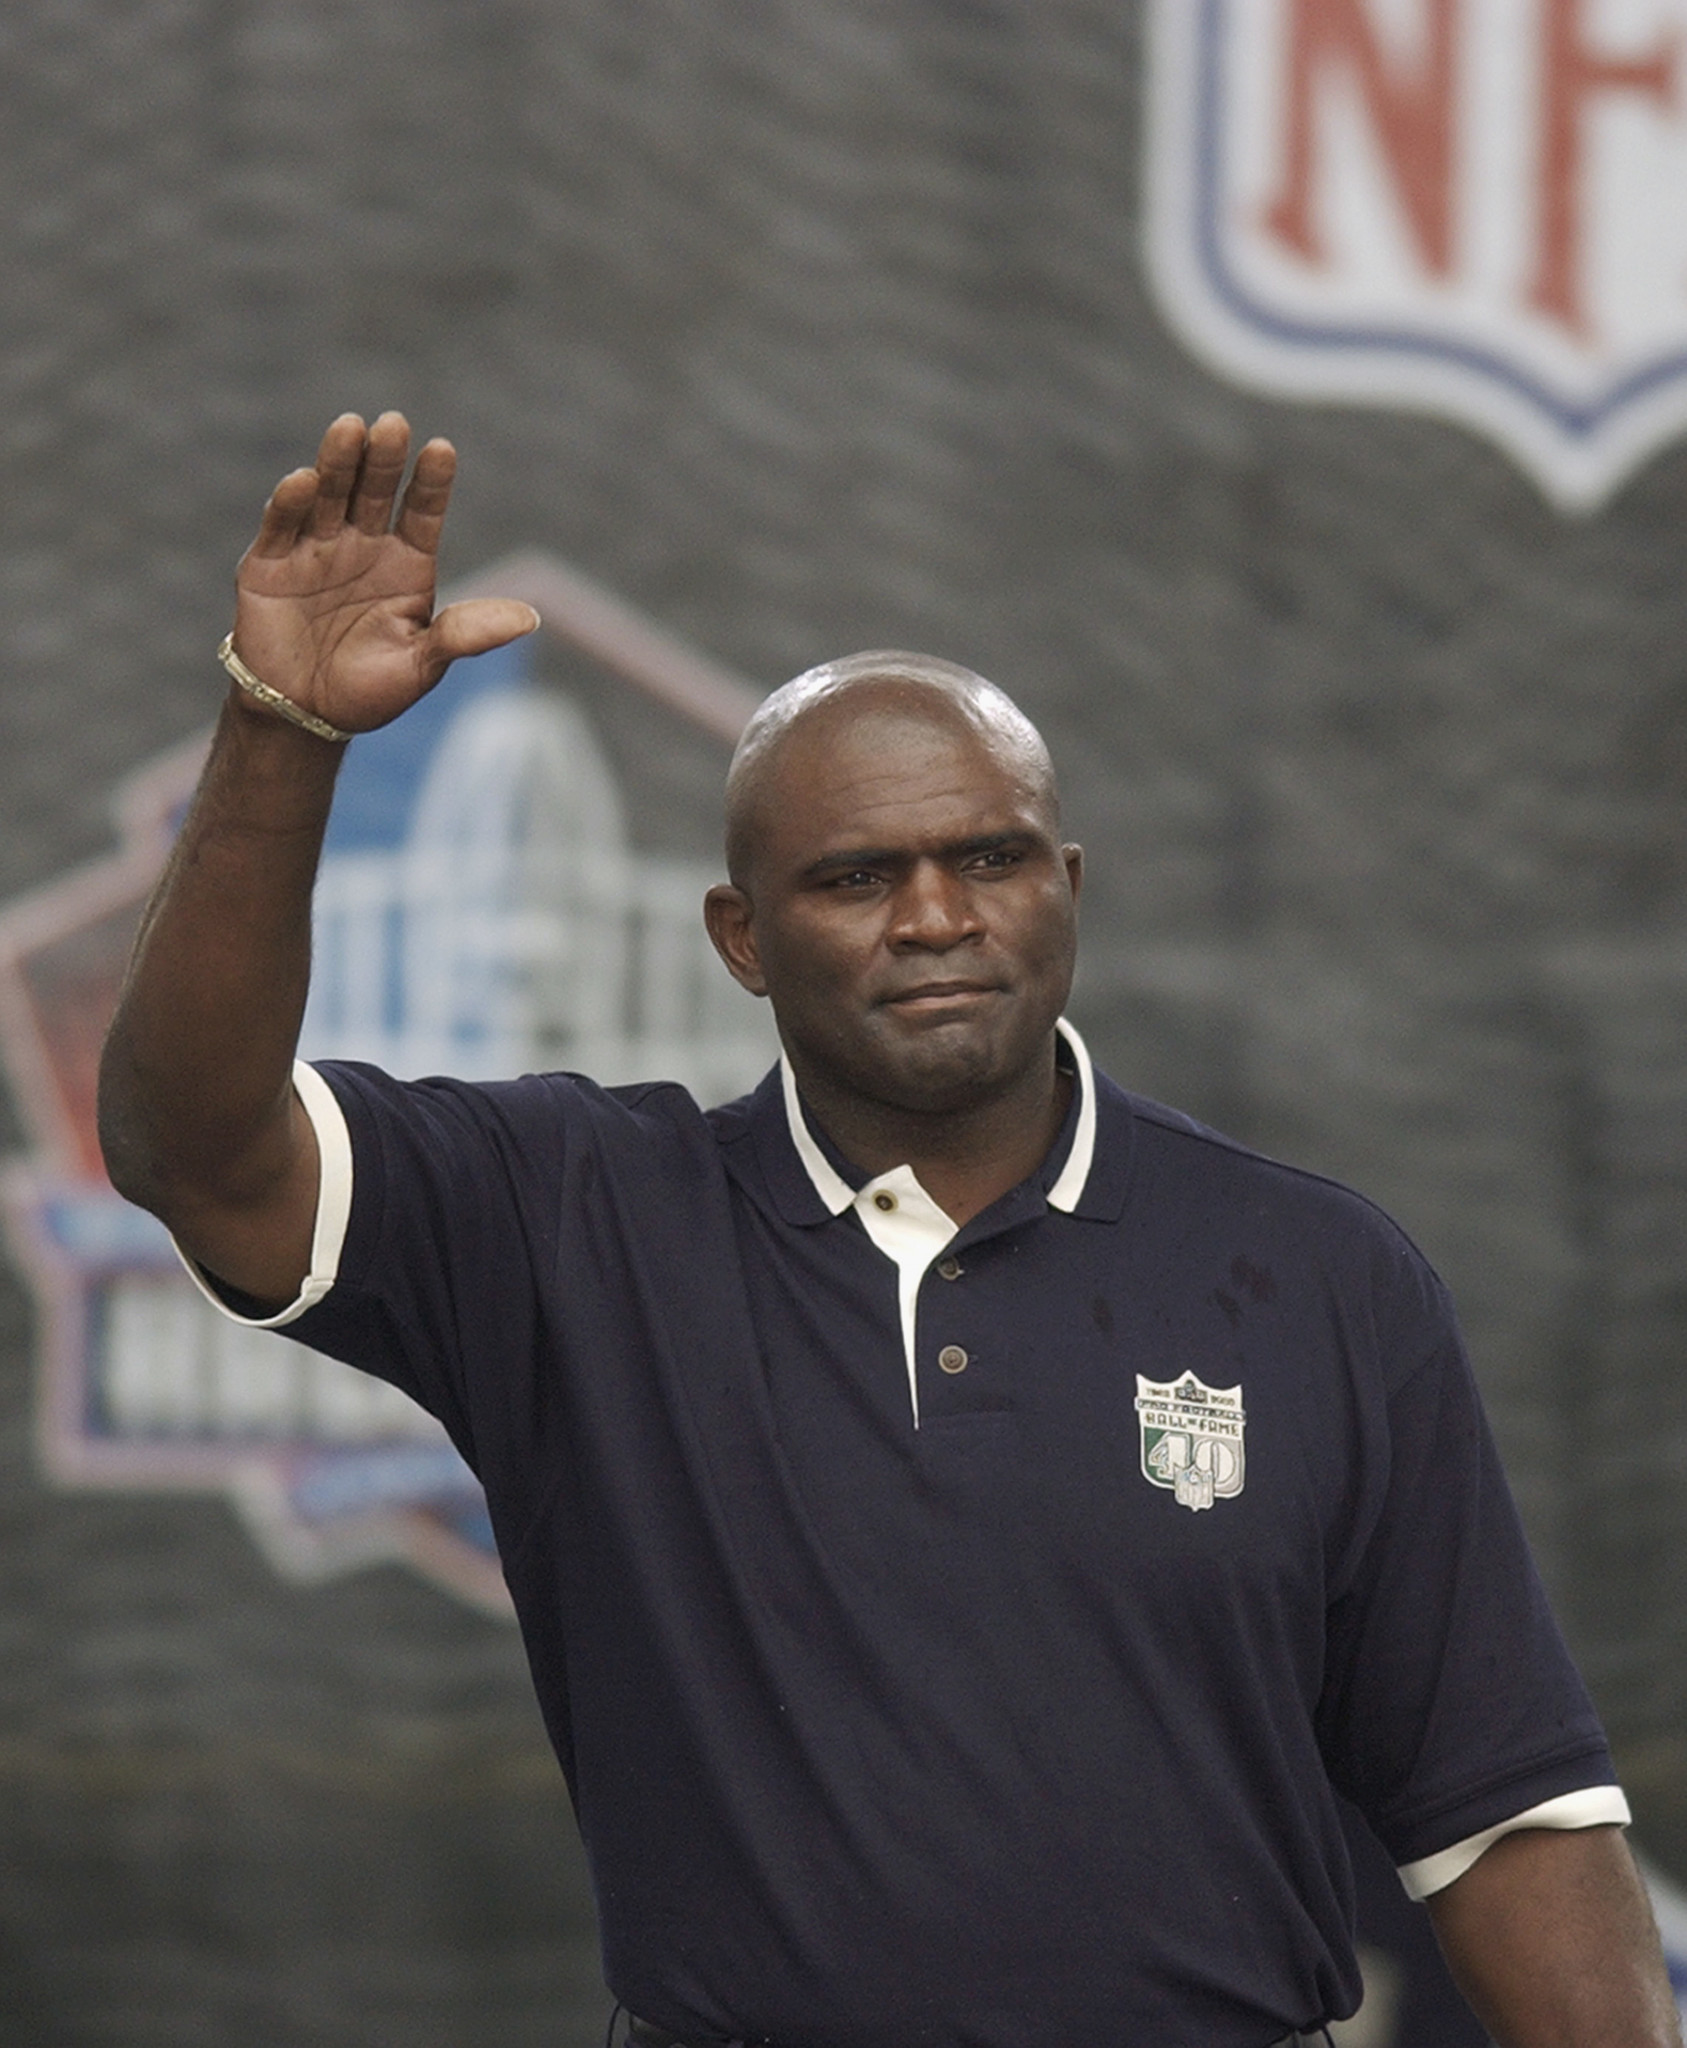 Ex Nfl Player Lawrence Taylor Pleads Guilty To Florida Dui